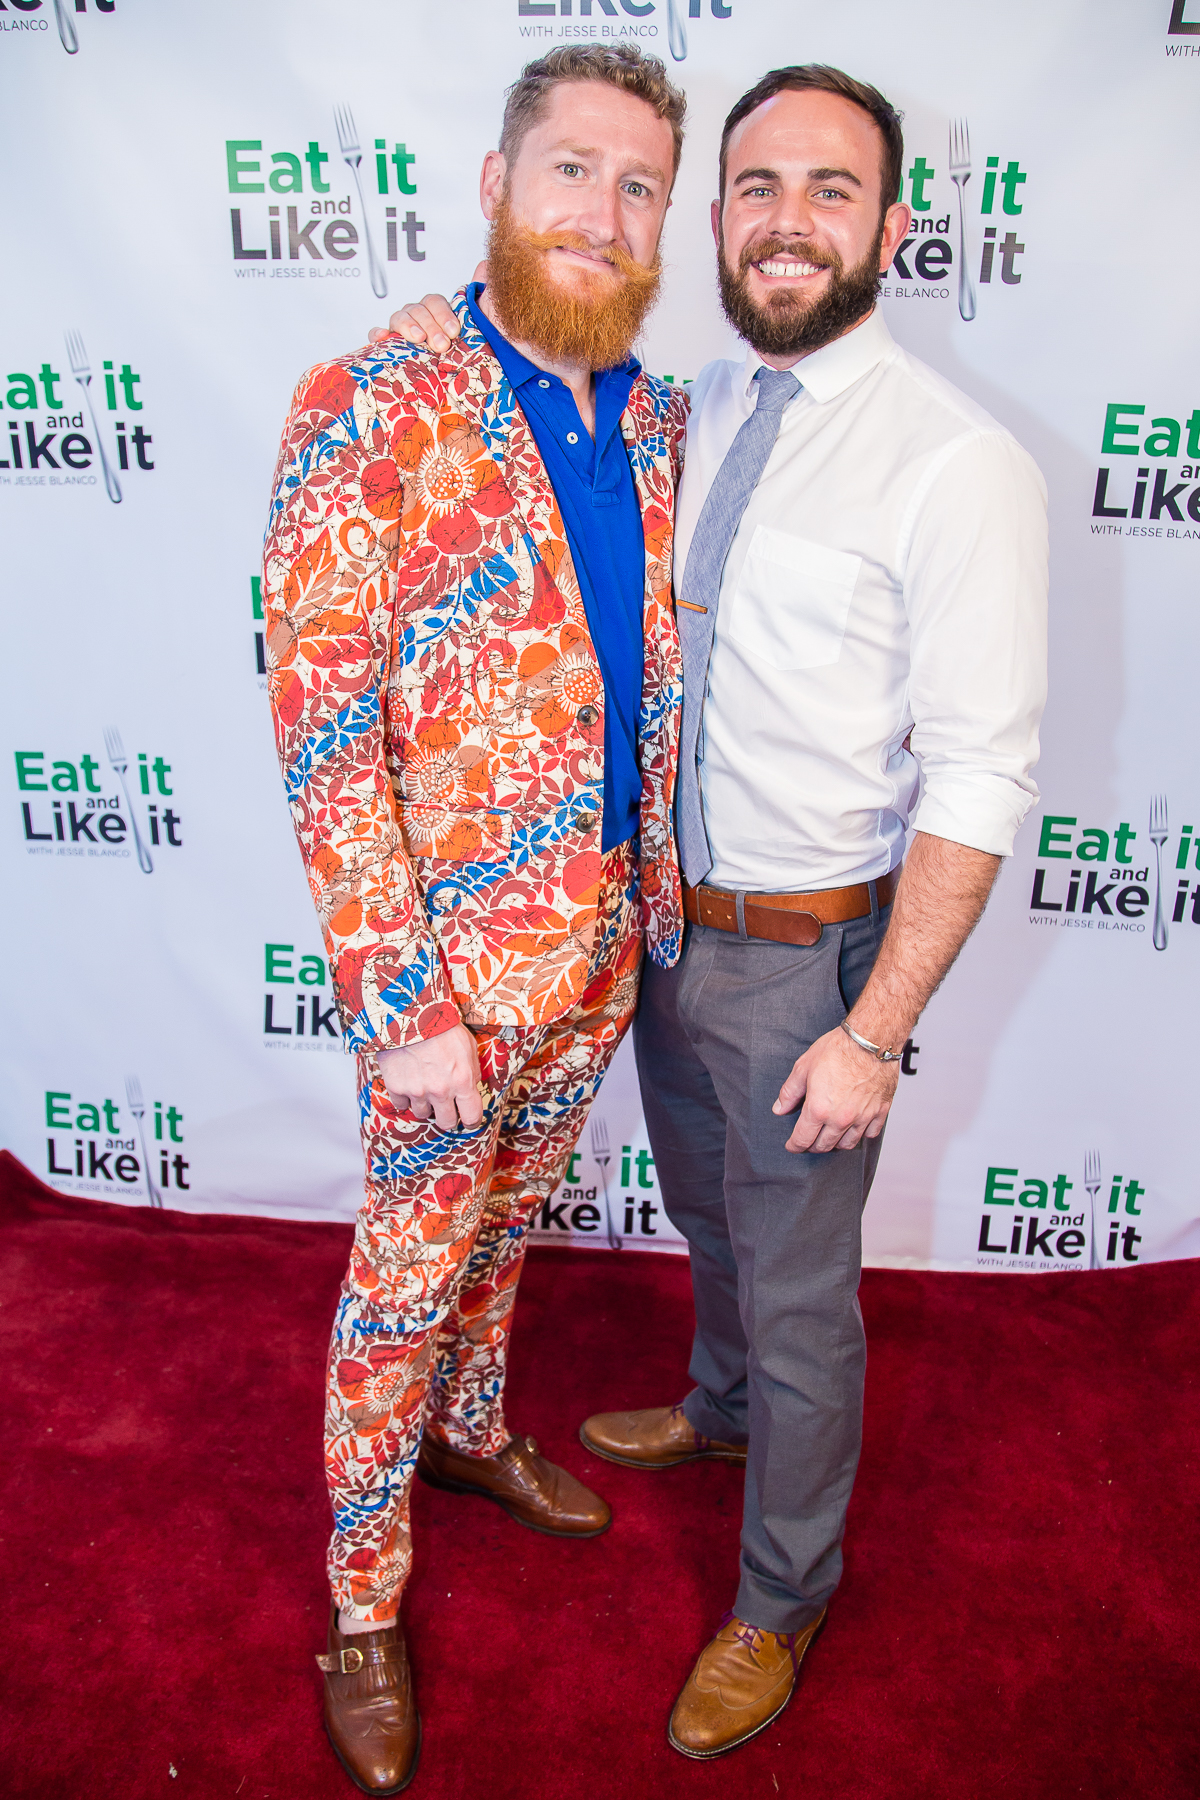 Scott Waldrup and Tart Johnson at Eat It and Like It Foodie Awards